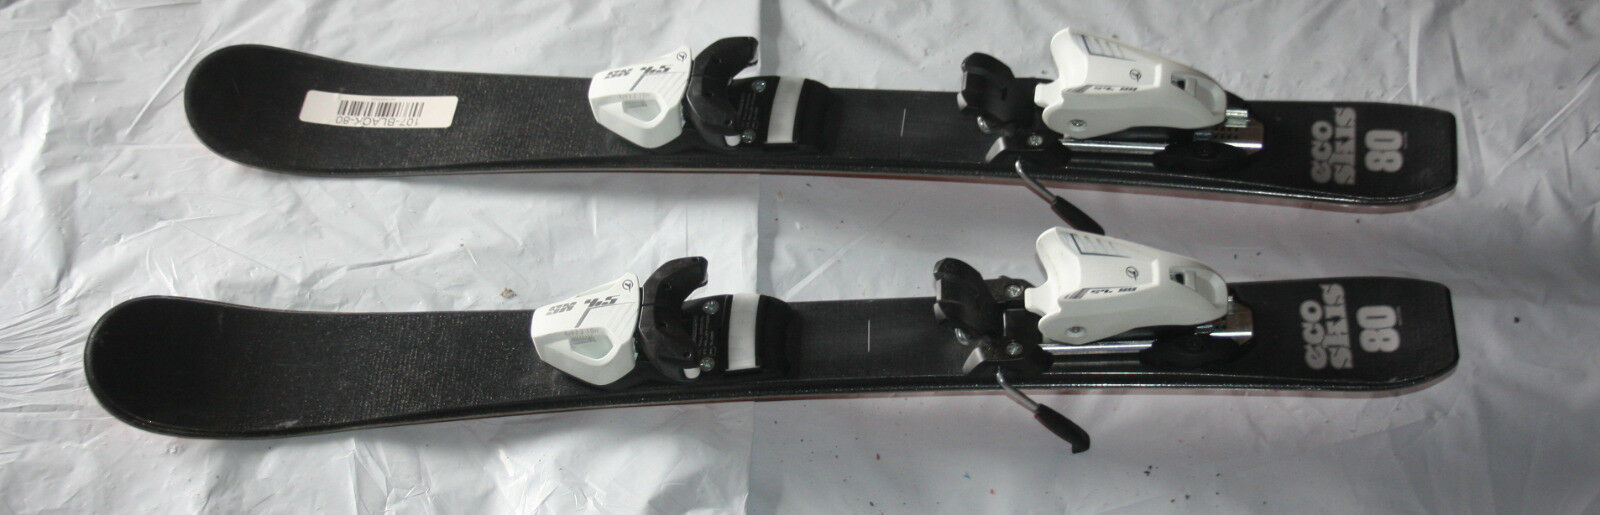 Kids skis Shape kids skis + adjustable Tyrolia SX 4.5 white Bindings 80cm g13